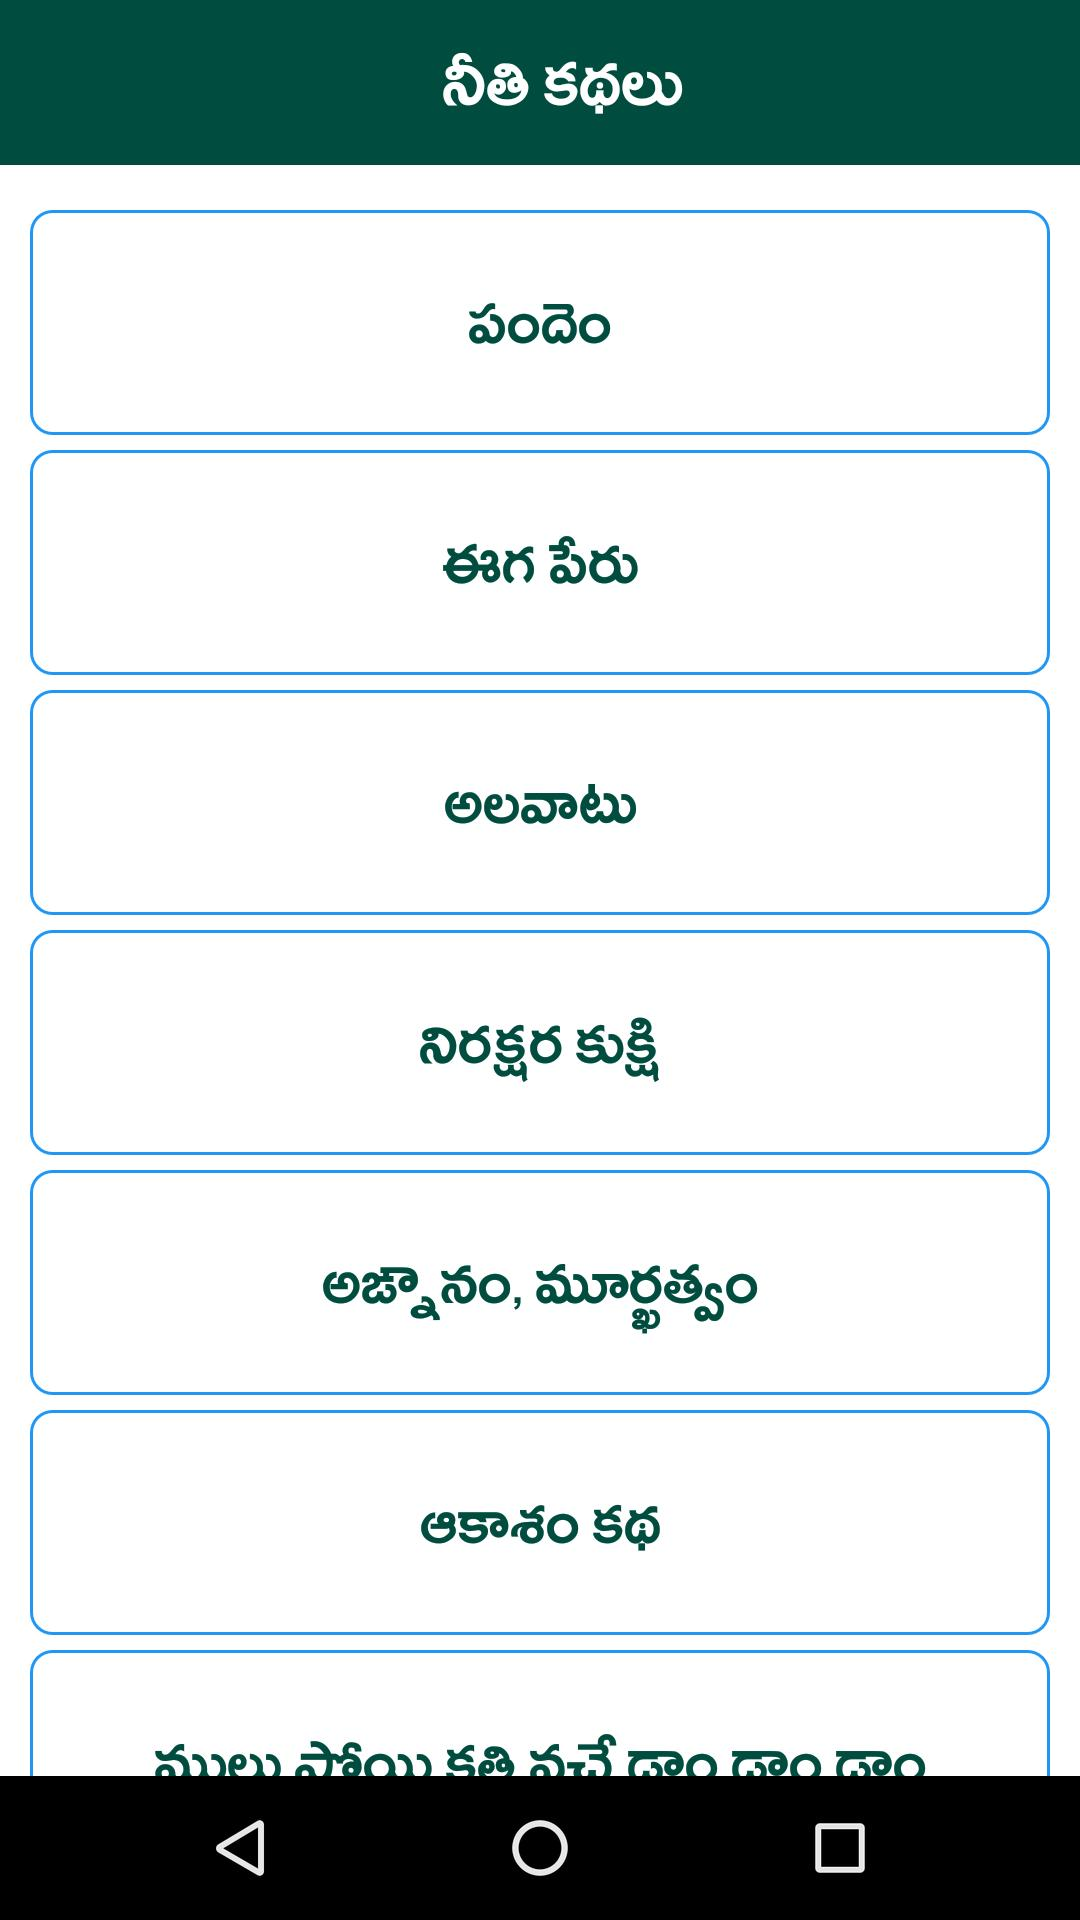 Telugu Moral Stories Telugu Stories for Android - APK Download